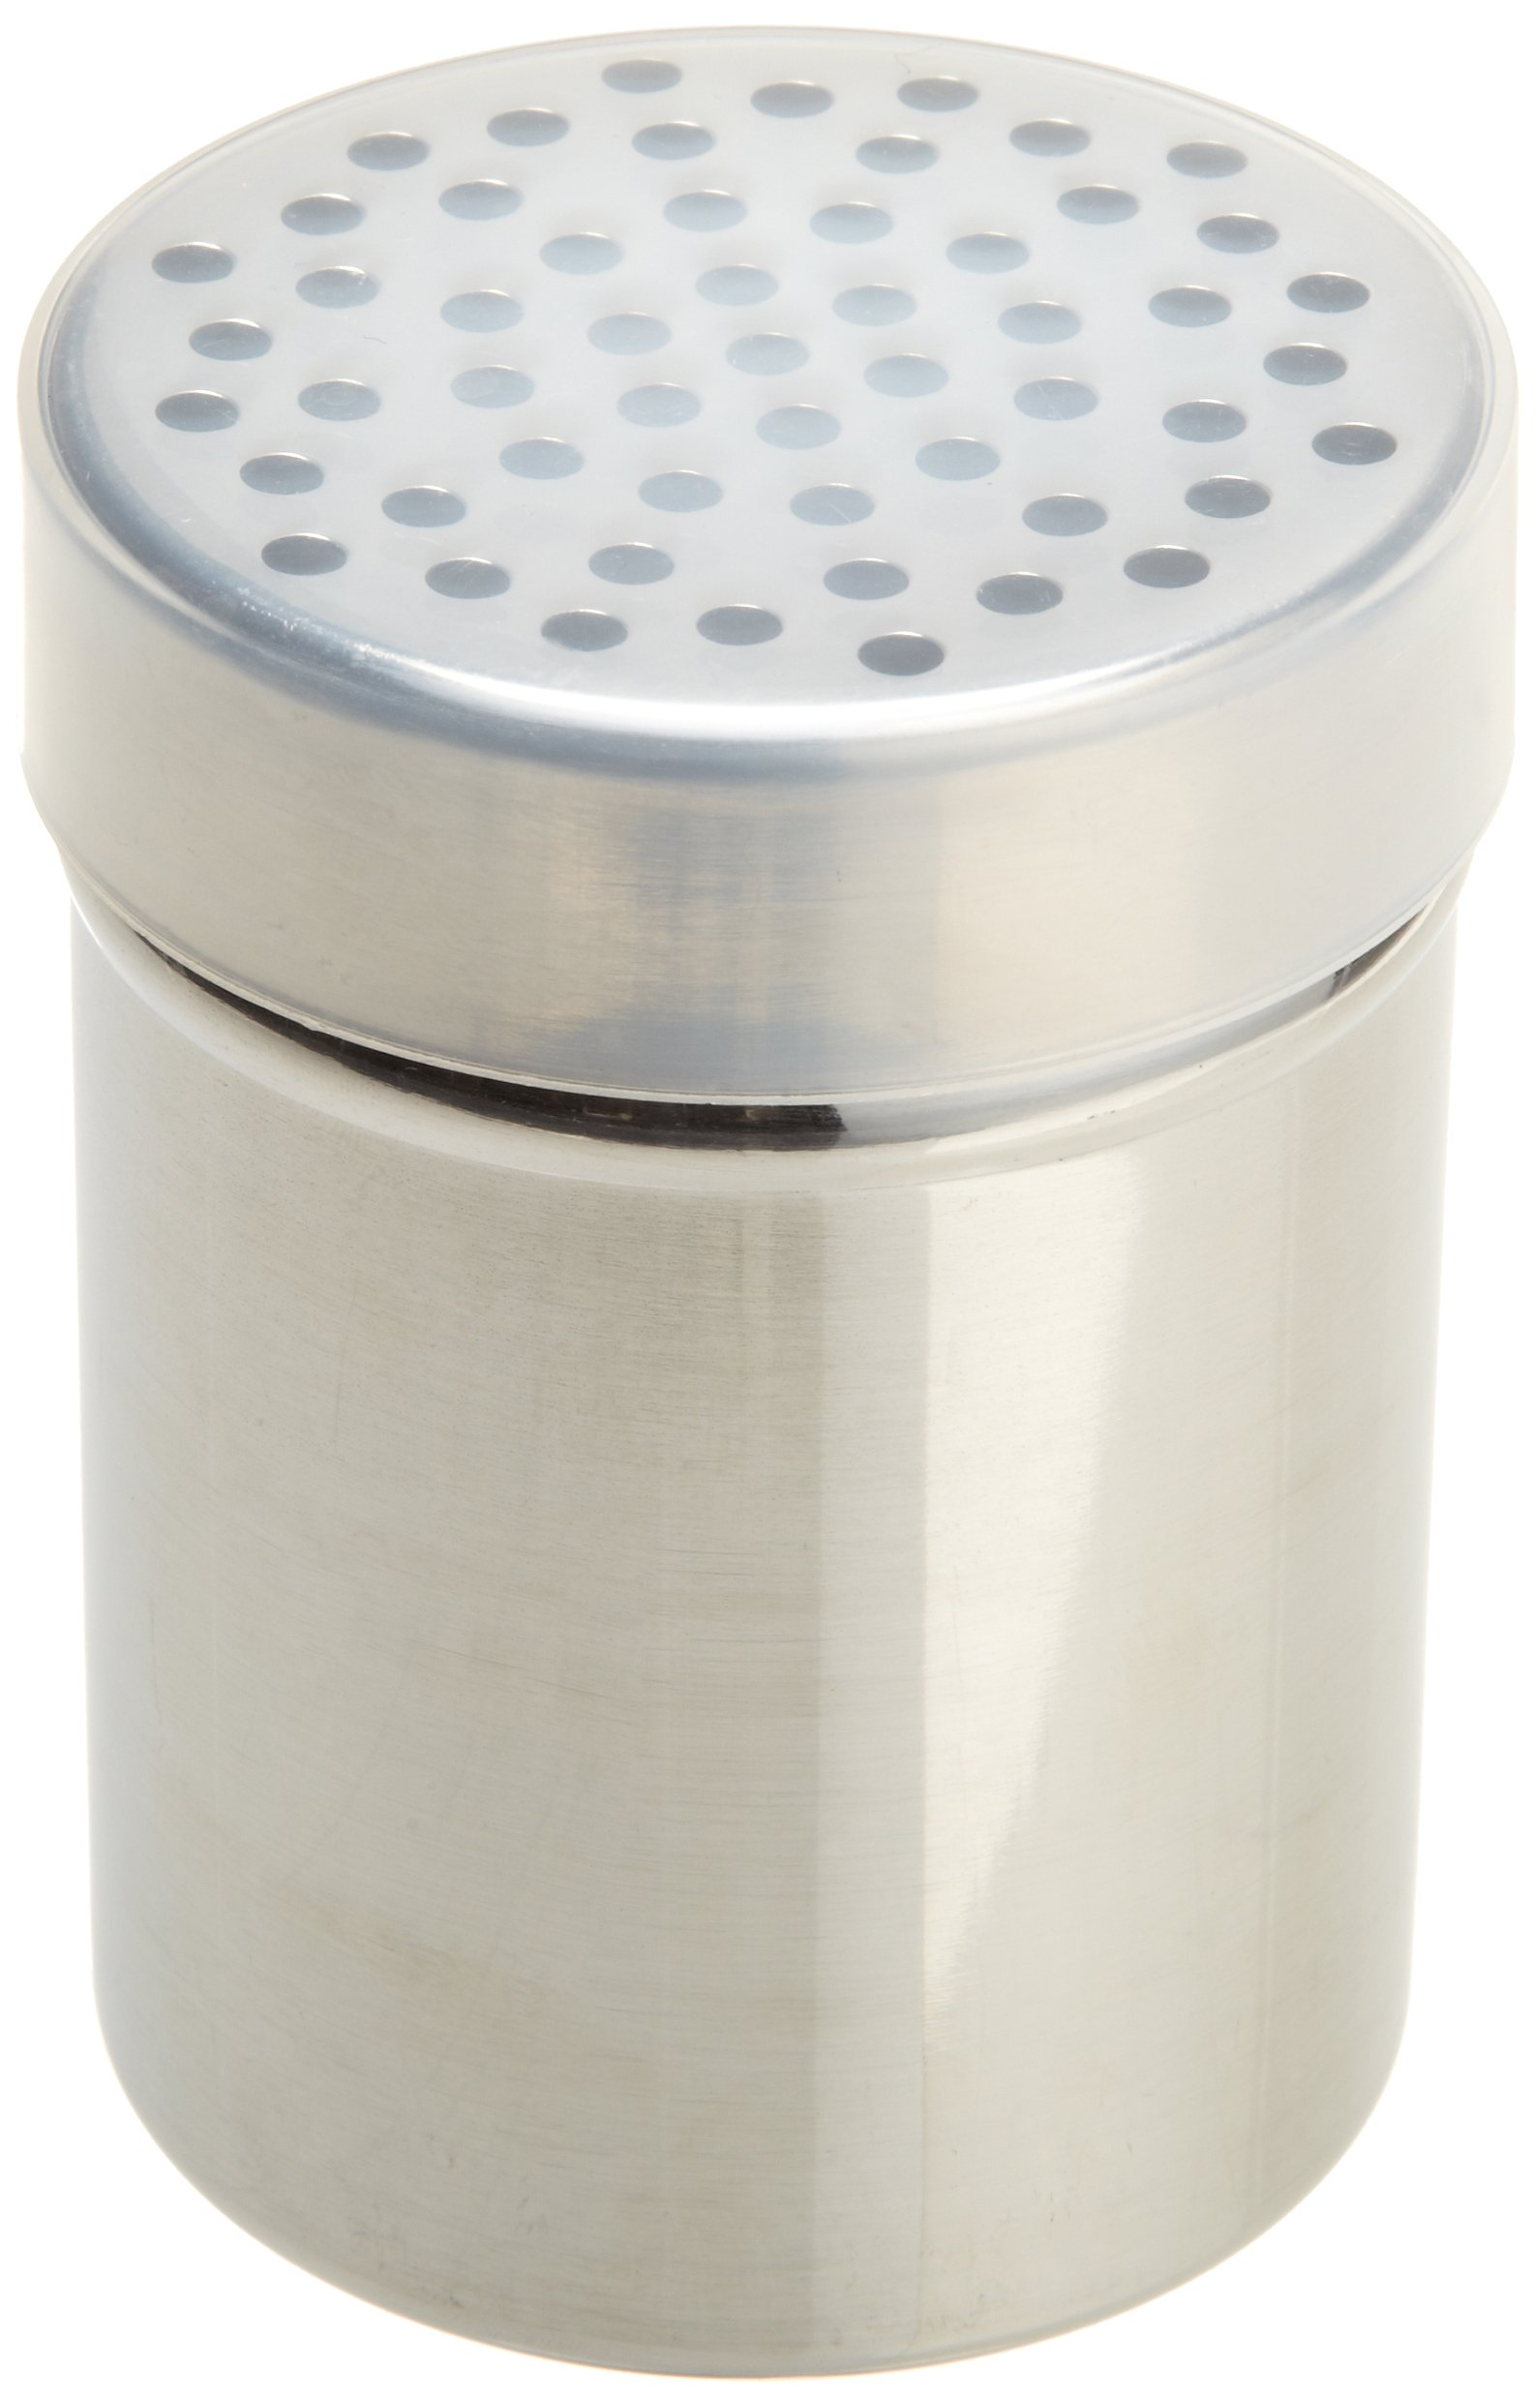 Ateco 1351 Stainless Steel Shaker, 10-ounce Capacity with Coarse Holes